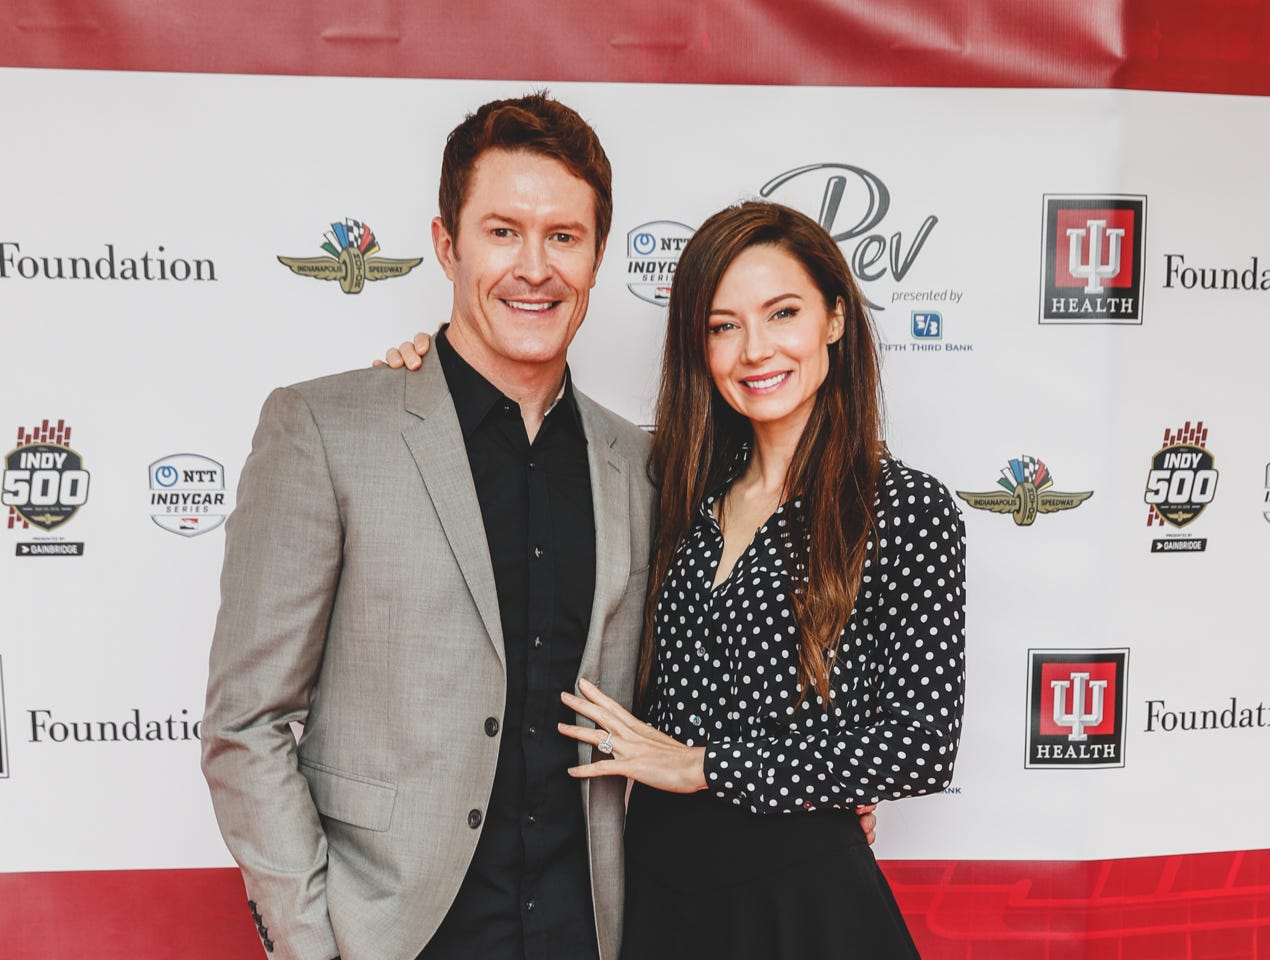 IndyCar driver Scott Dixon and his wife Emma Davies walk the red carpet at the Rev Indy fundraiser, held at the Indianapolis Motor Speedway on Saturday, May 4, 2019. Funds raised support the IU Health Foundation statewide and the IU Health Emergency Medical Center at IMS.